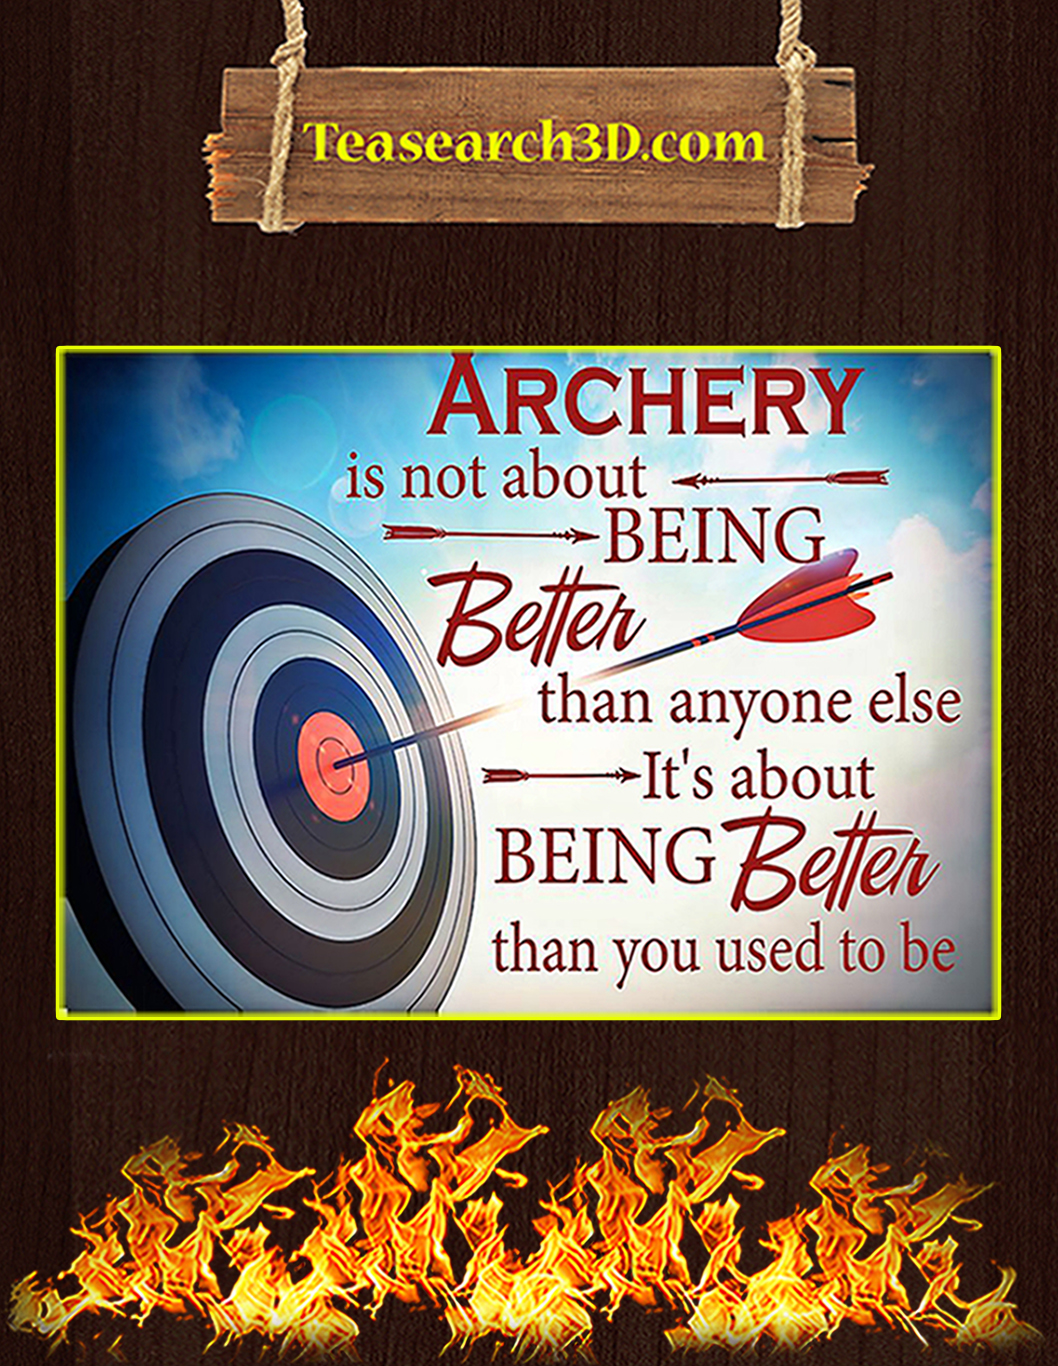 Archery is not about being better than anyone else poster A1